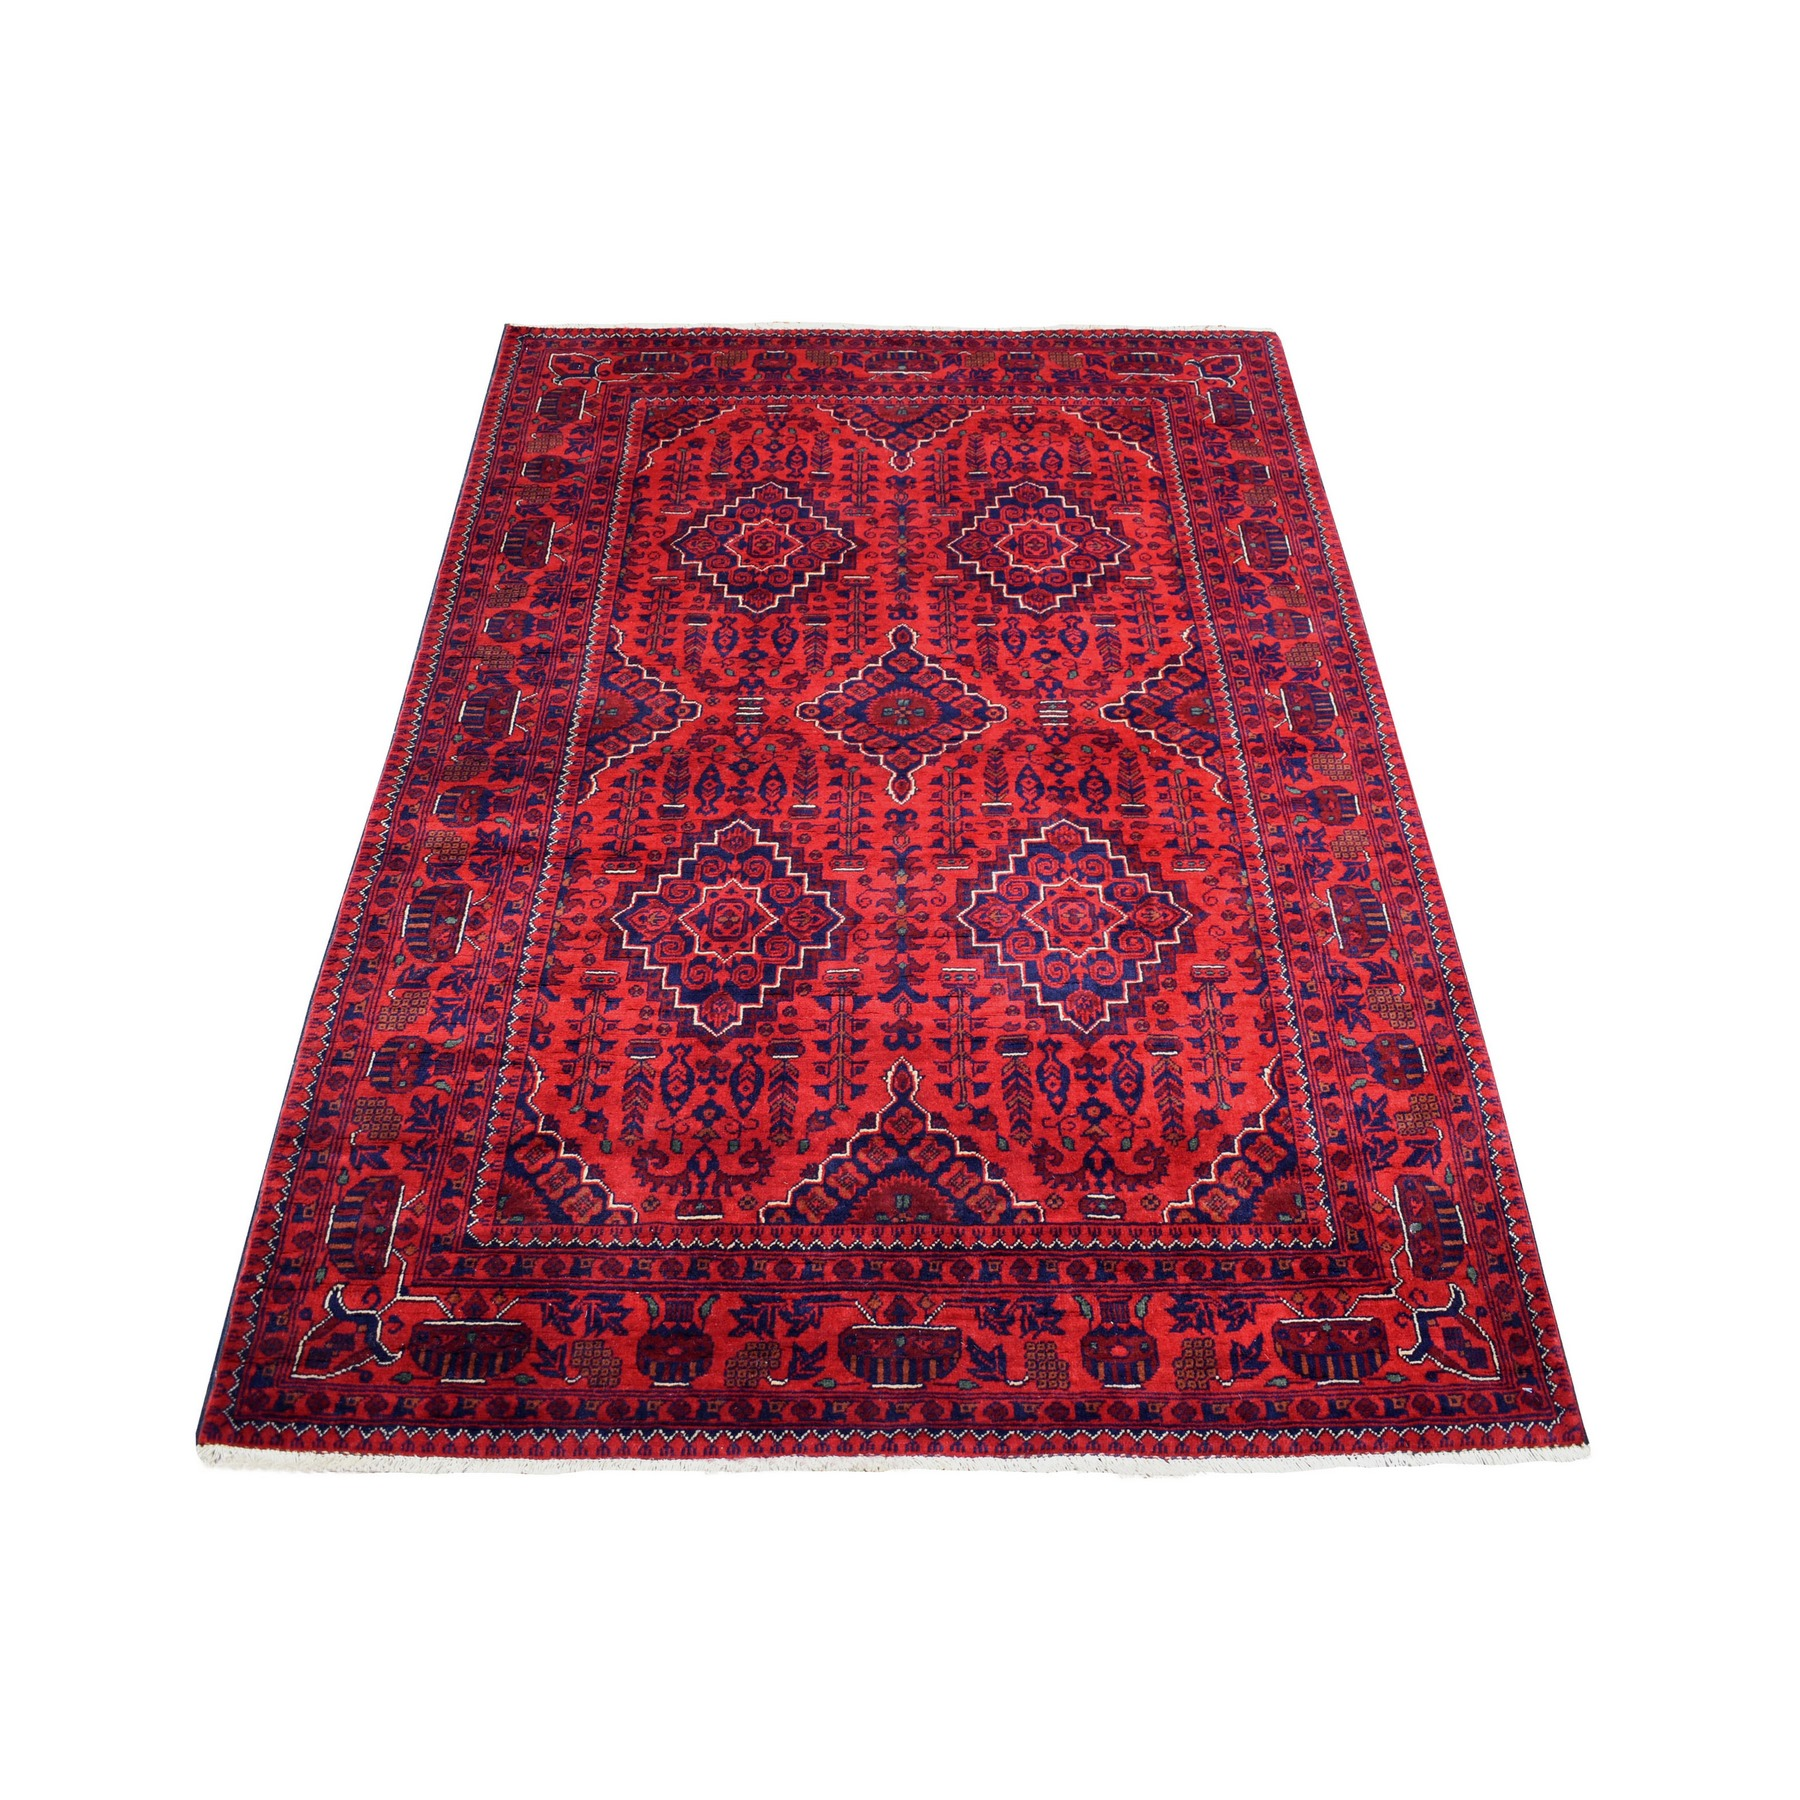 Nomadic And Village Collection Hand Knotted Red Rug No: 1136146